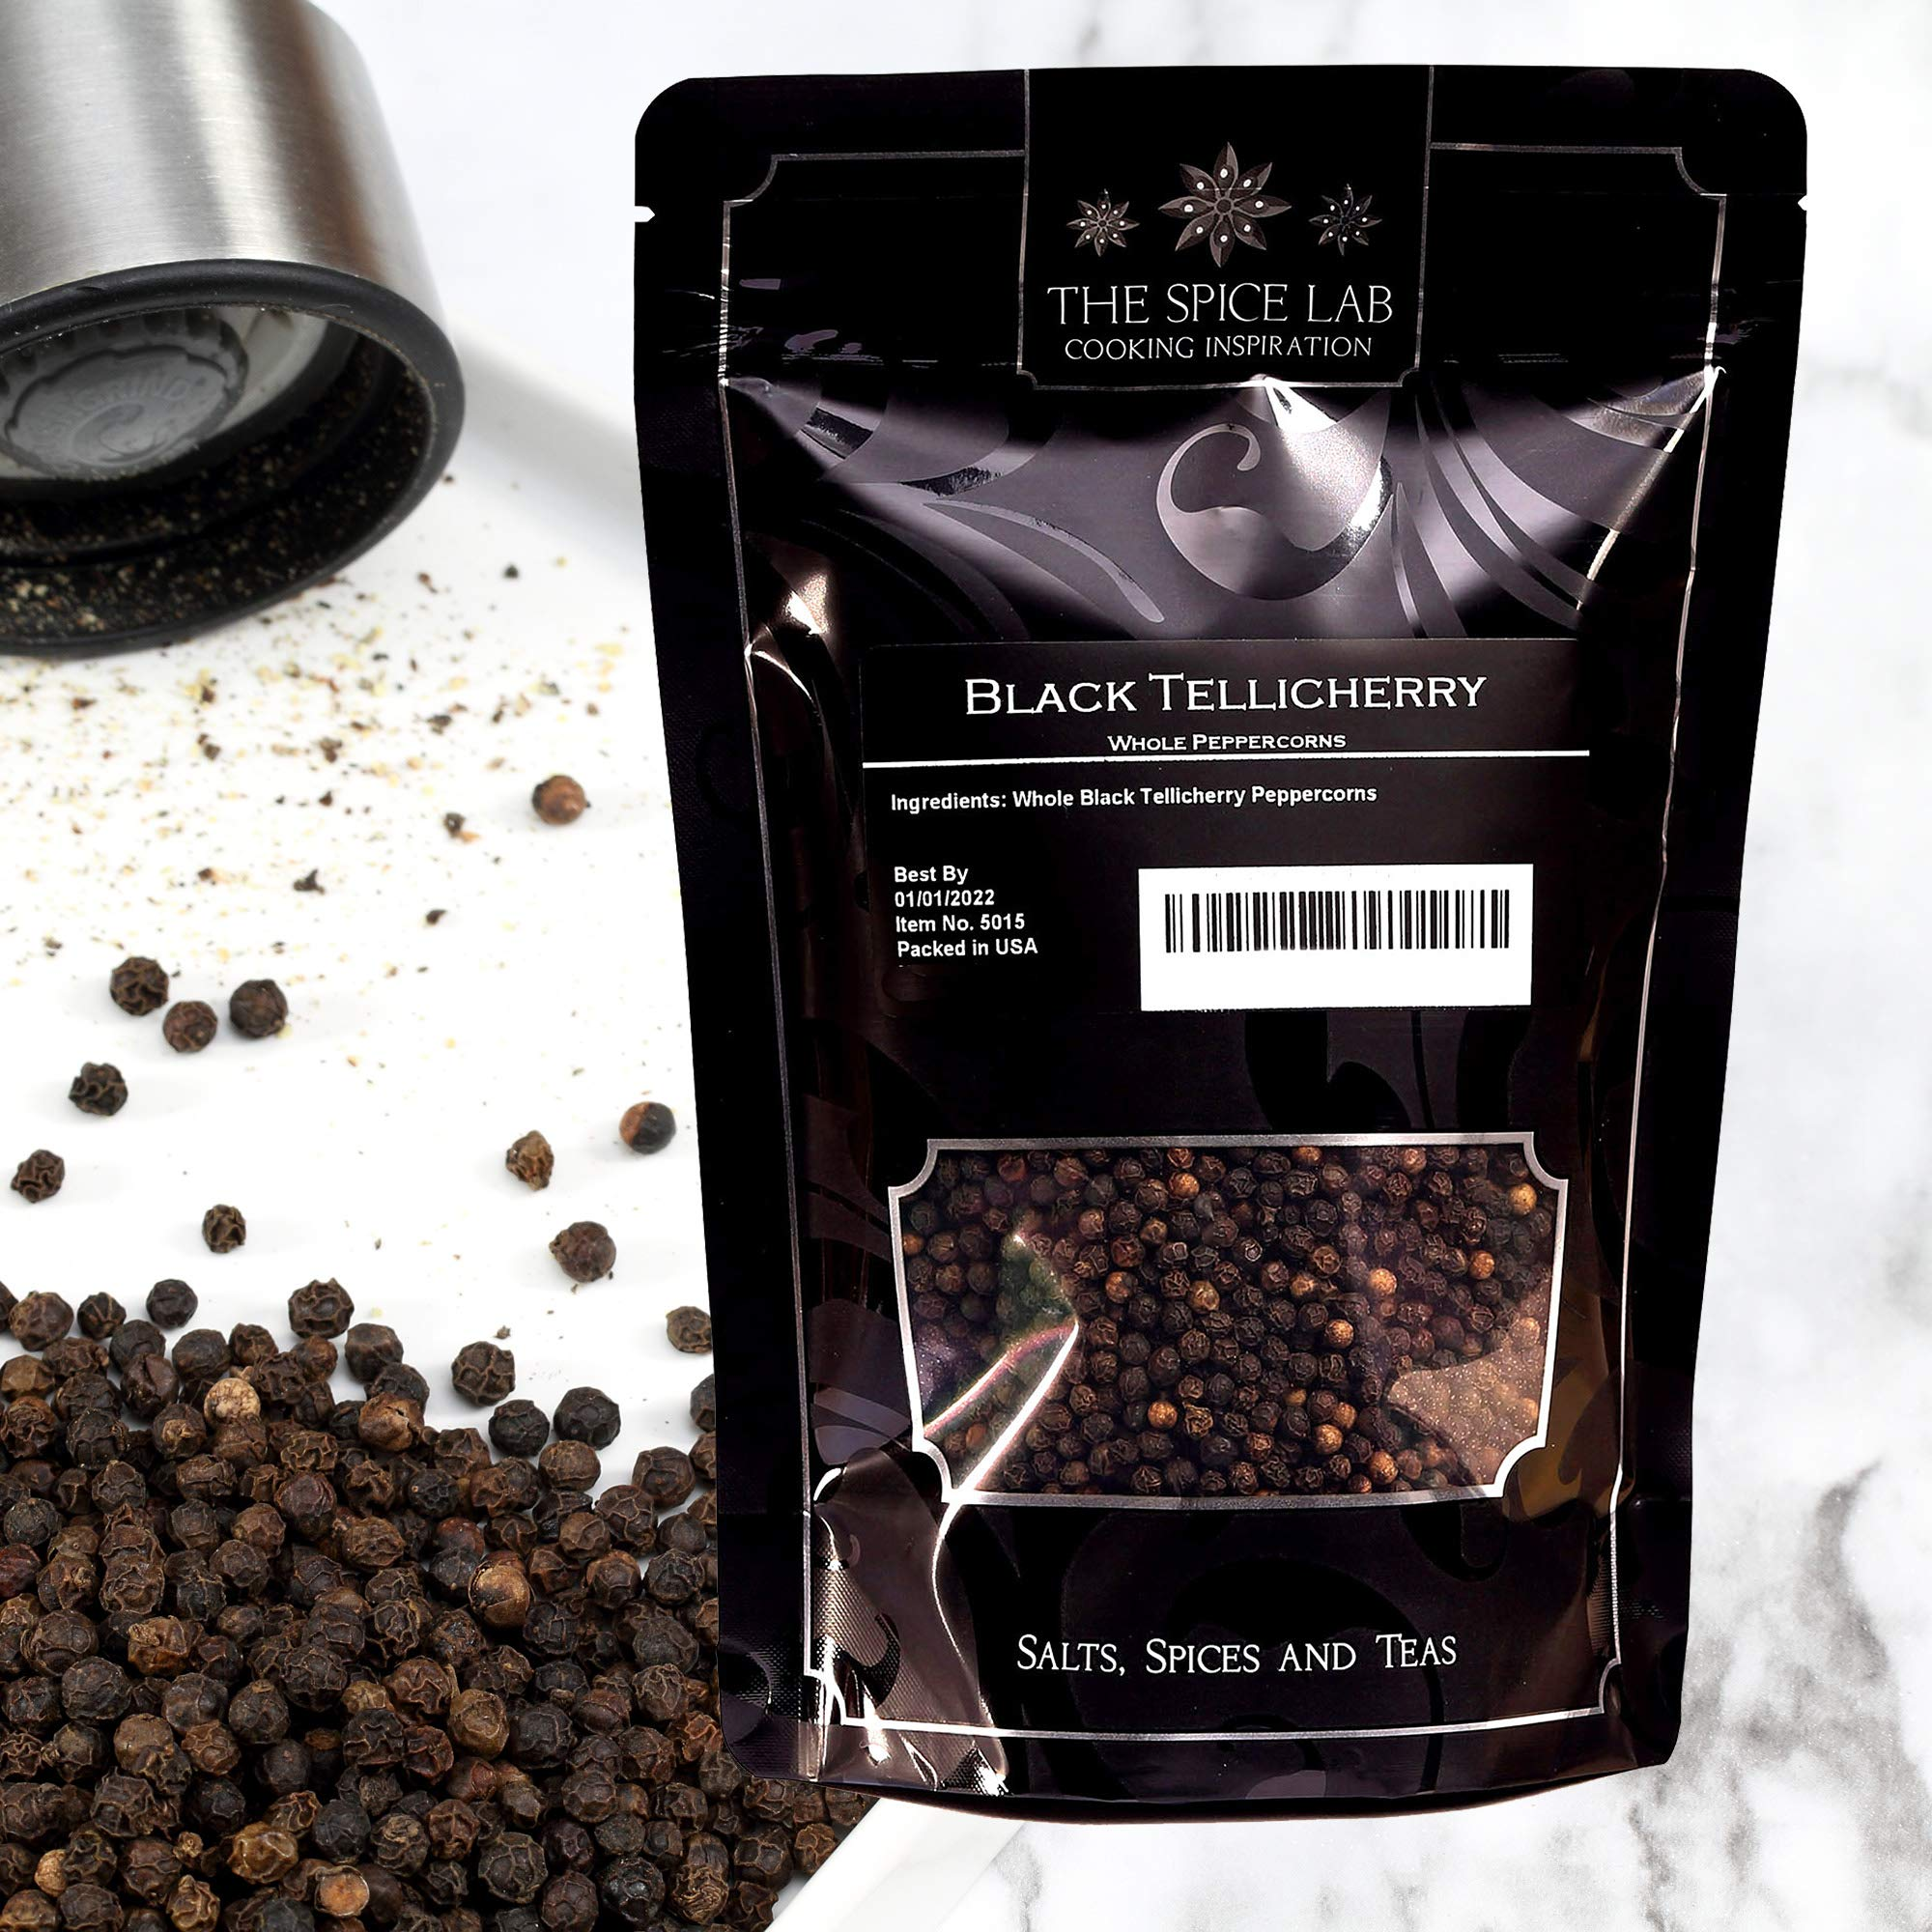 The Spice Lab - 4 oz. Black Tellicherry Peppercorns for Grinder Packed in the USA - Steam Sterilized Kosher Non-GMO All Natural Black Pepper Resealable Bag 5015